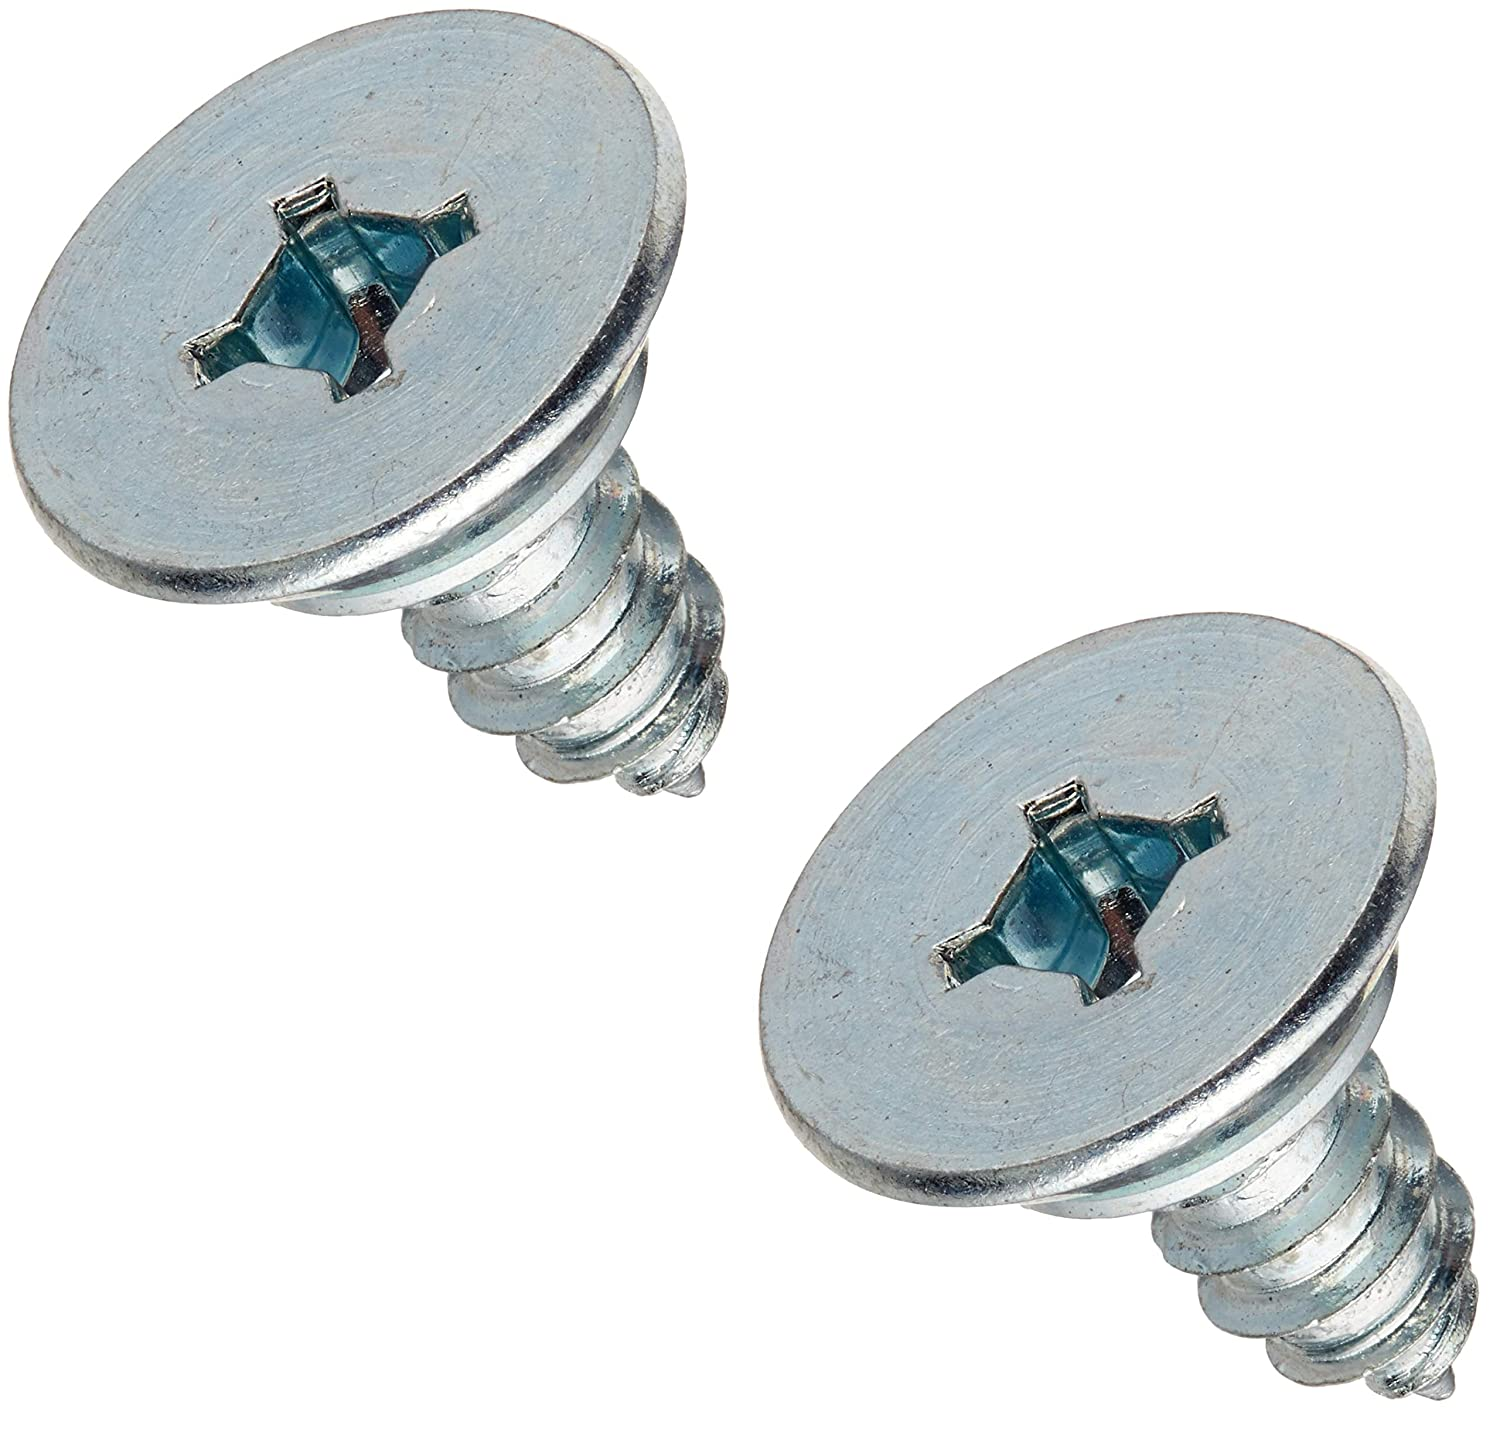 2 x 240521303 Screw for Door Handle Compatible with Frigidaire Refrigerator